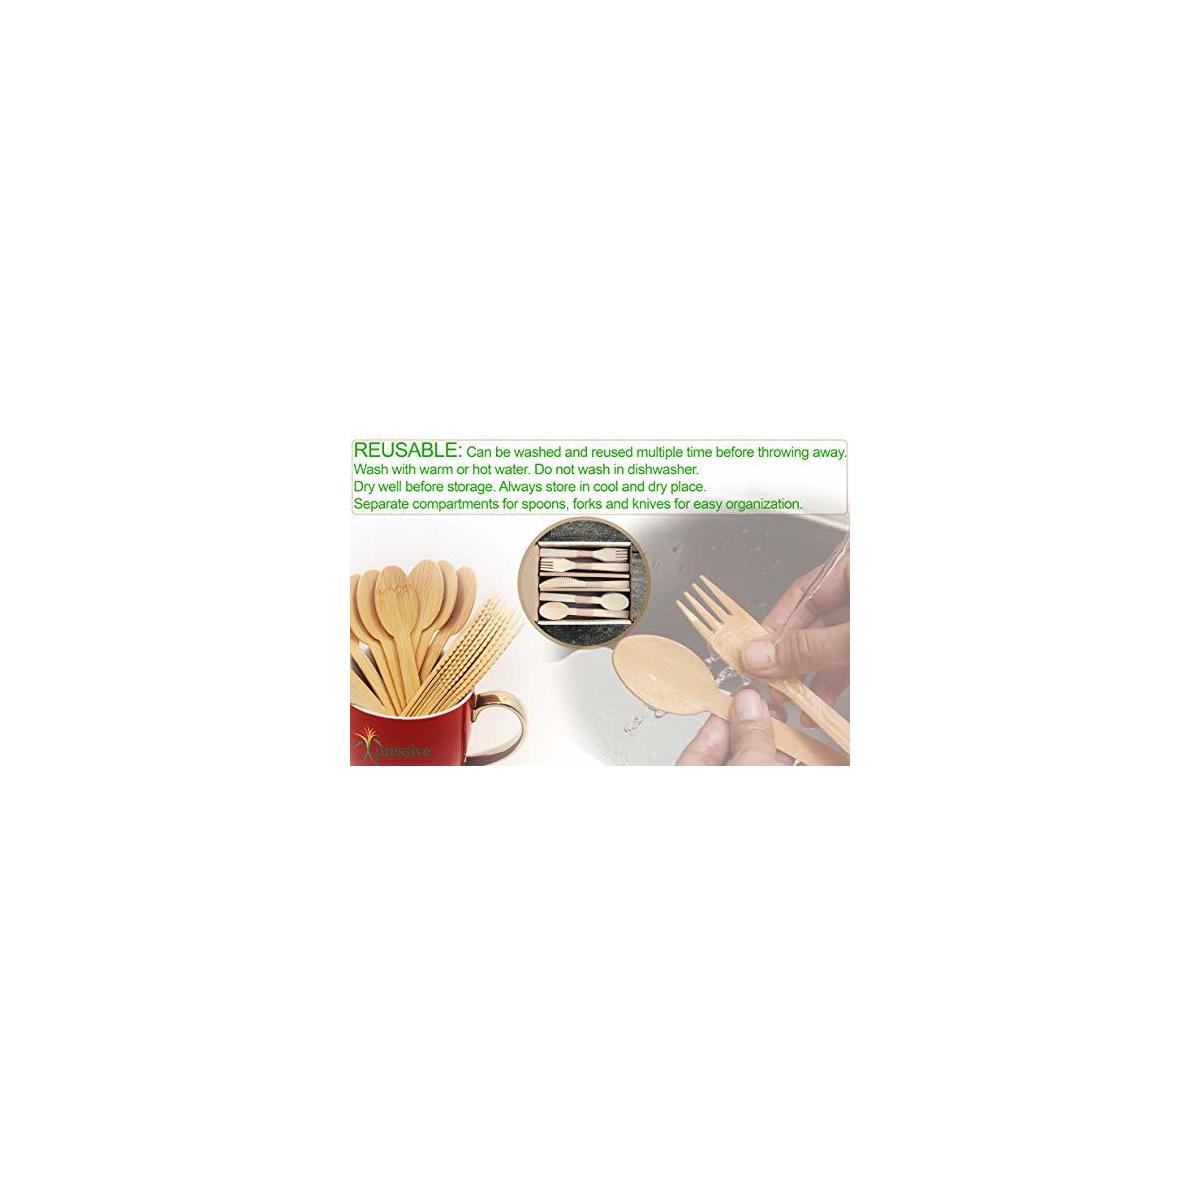 Genuine Bamboo Disposable Cutlery : Heavy Duty Premium Quality & More Sustainable than WOOD & CPLA | Eco Friendly Biodegradable Compostable & Convenient for any Occasion (40 Forks 40 Spoons 20 Knives)